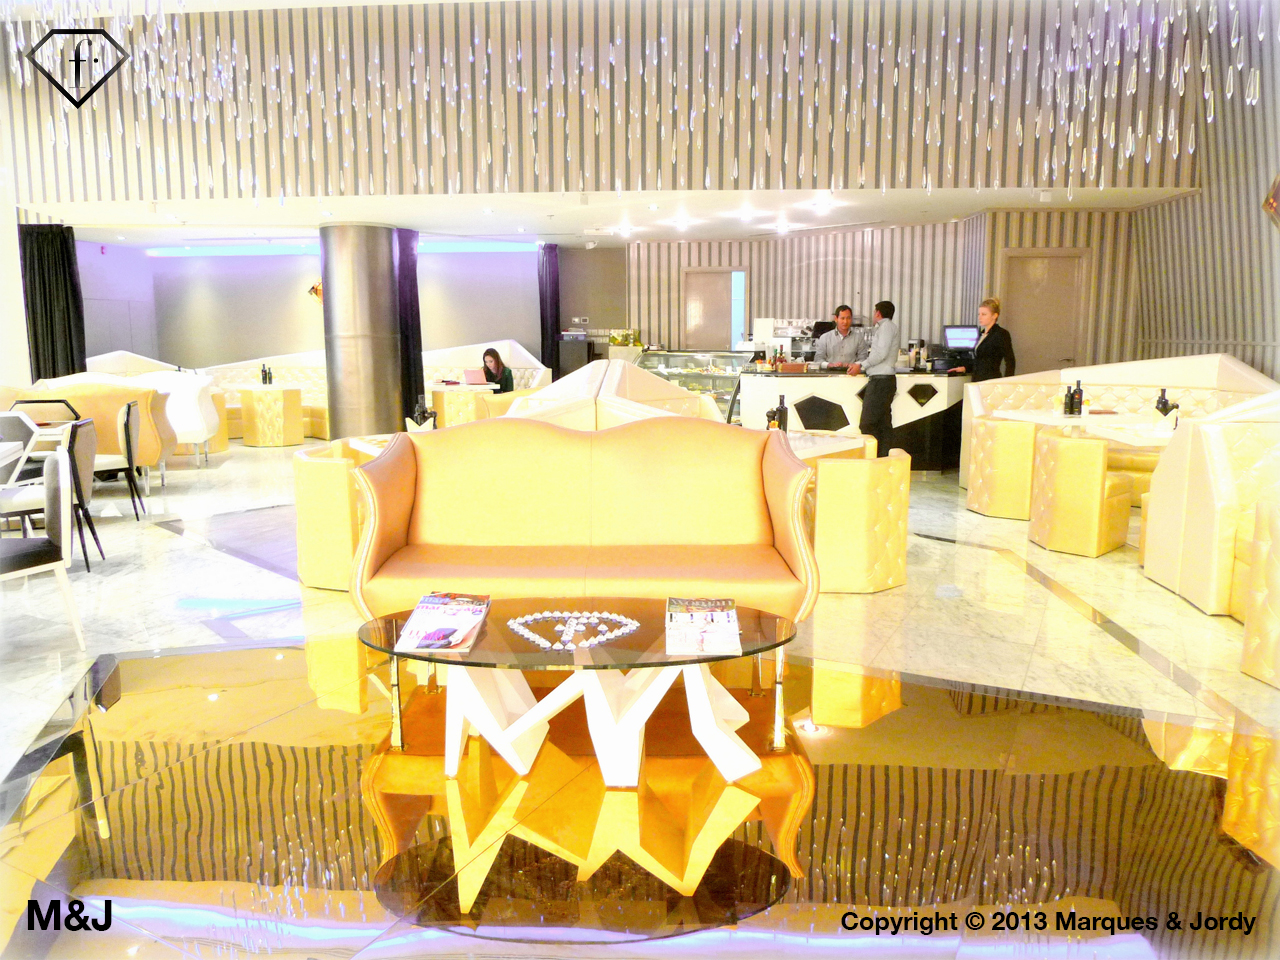 living room cafe abu dhabi keyboard and mouse fashion tv opens in marques jordy archinect